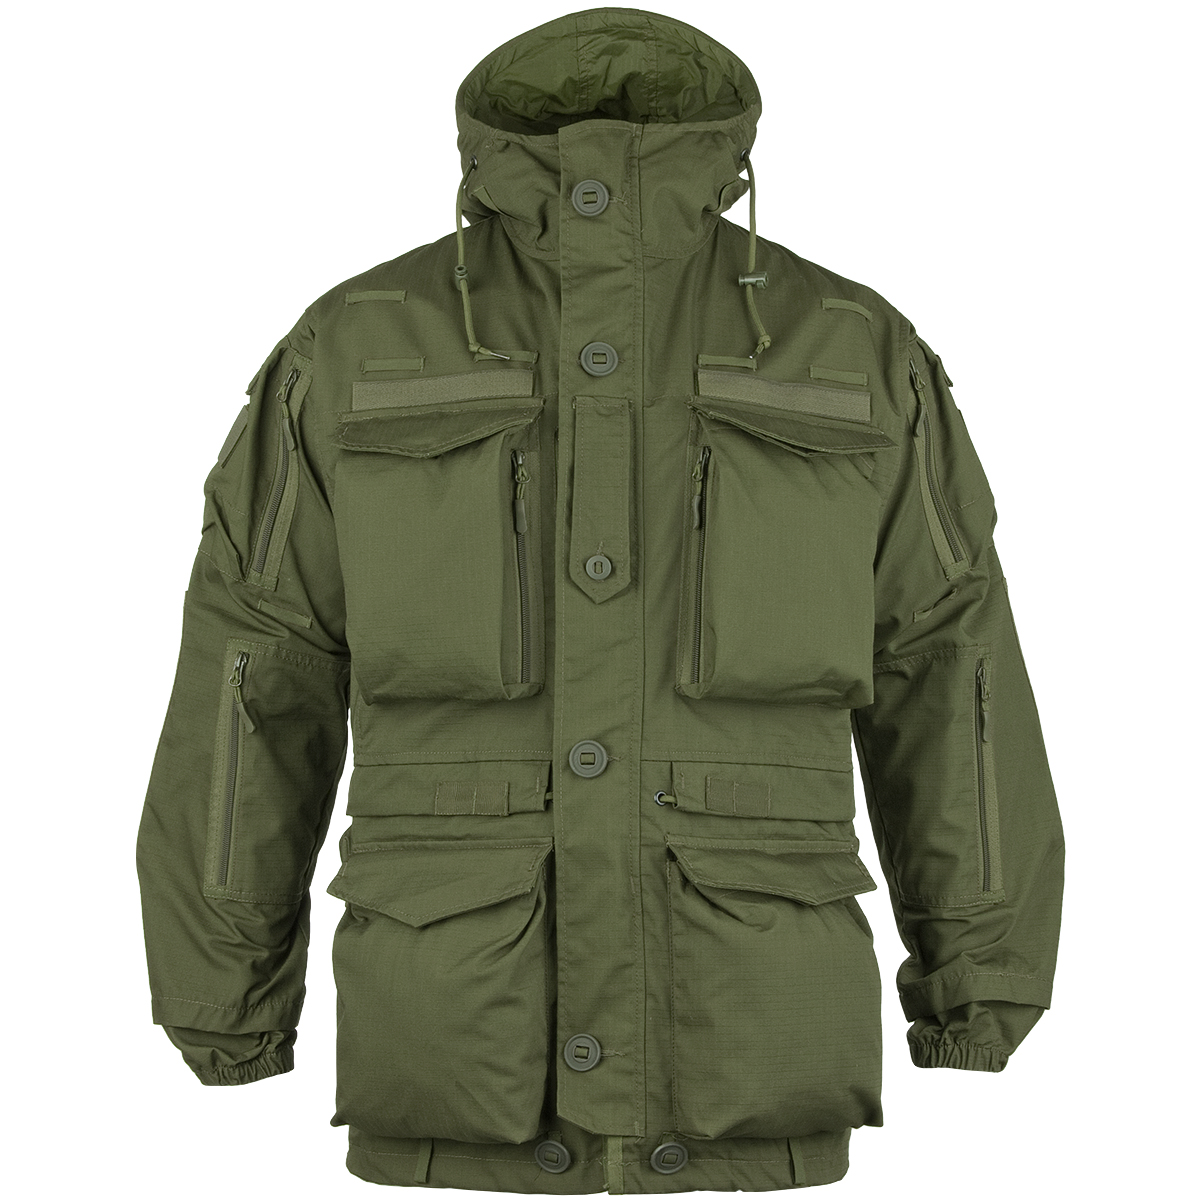 Teesar Army Smock Generation II Military Mens Hunting Jacket ...